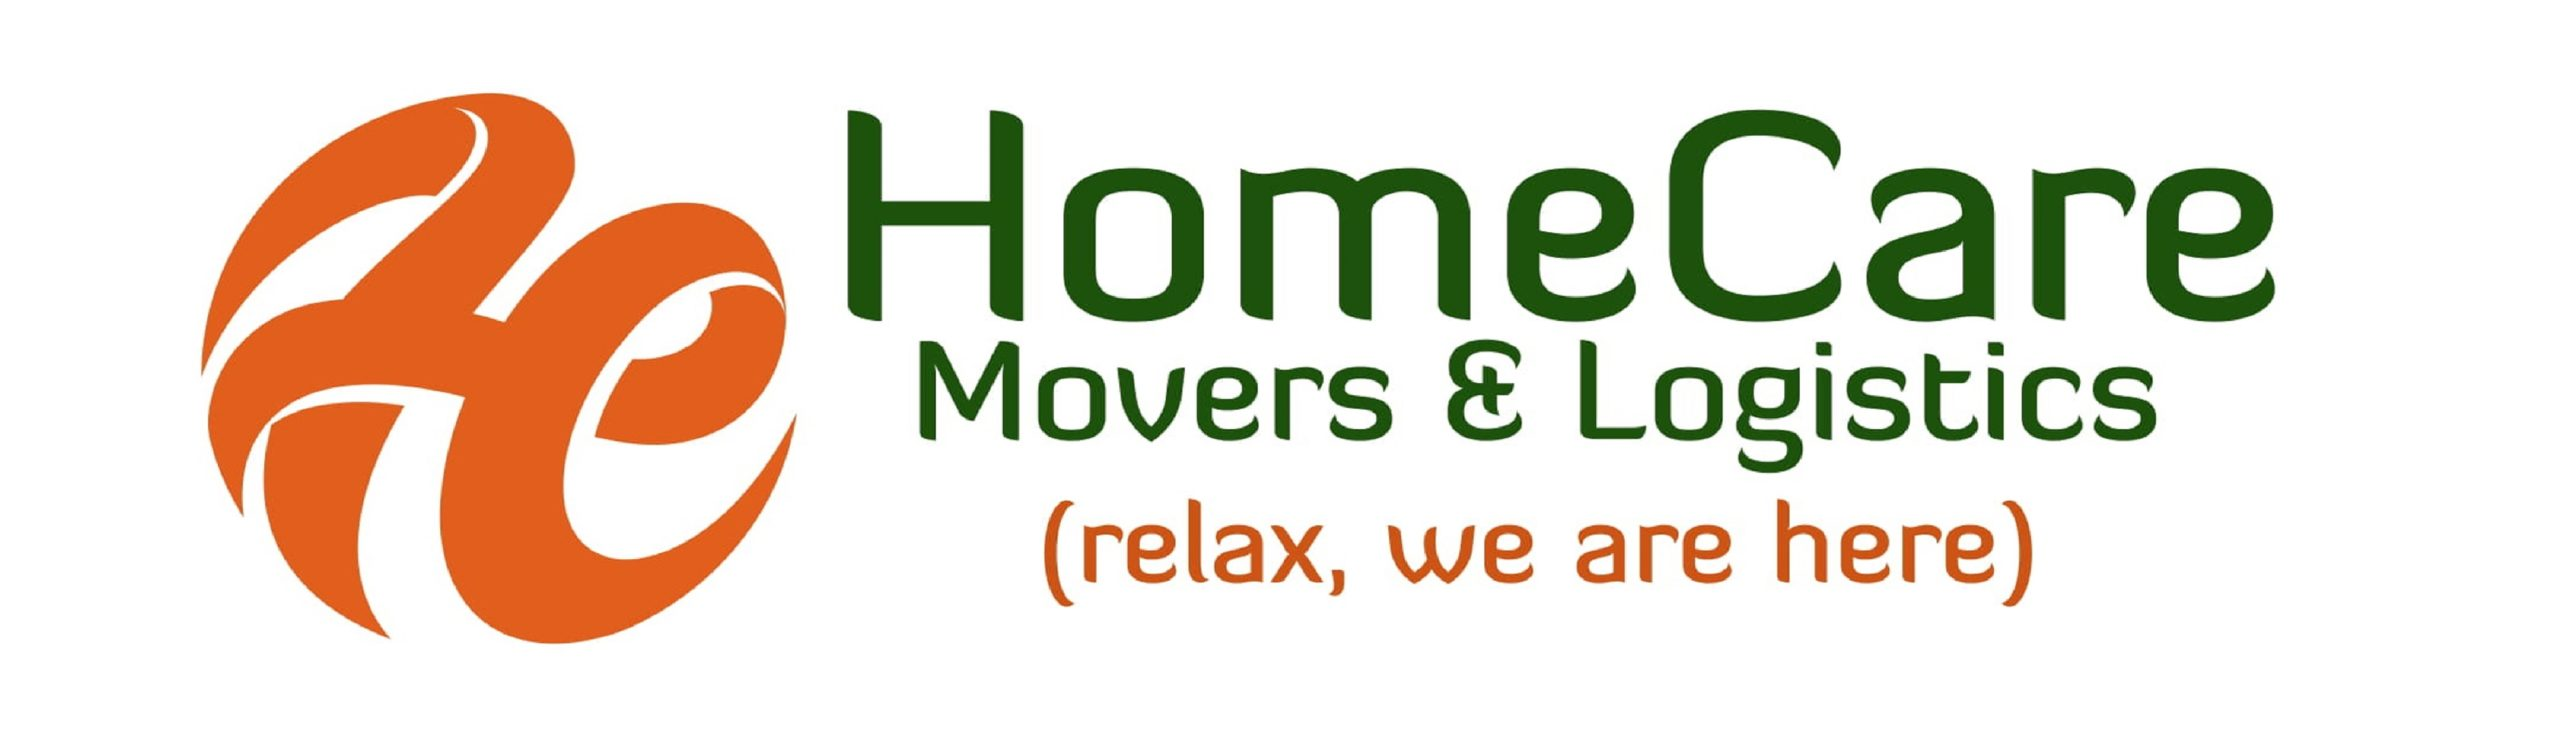 homecare movers logo